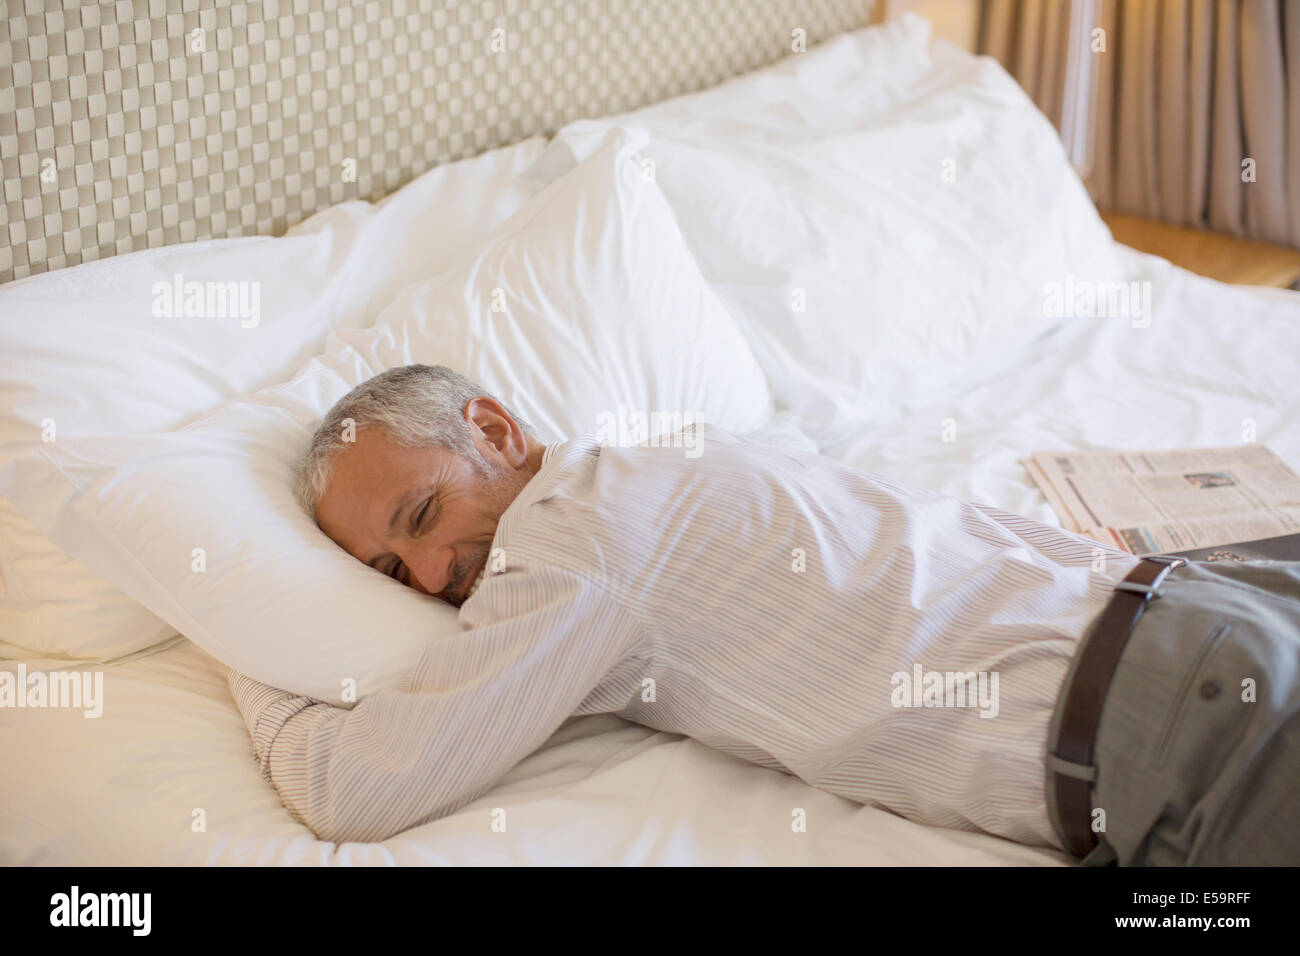 Businessman laying on bed in hotel room - Stock Image